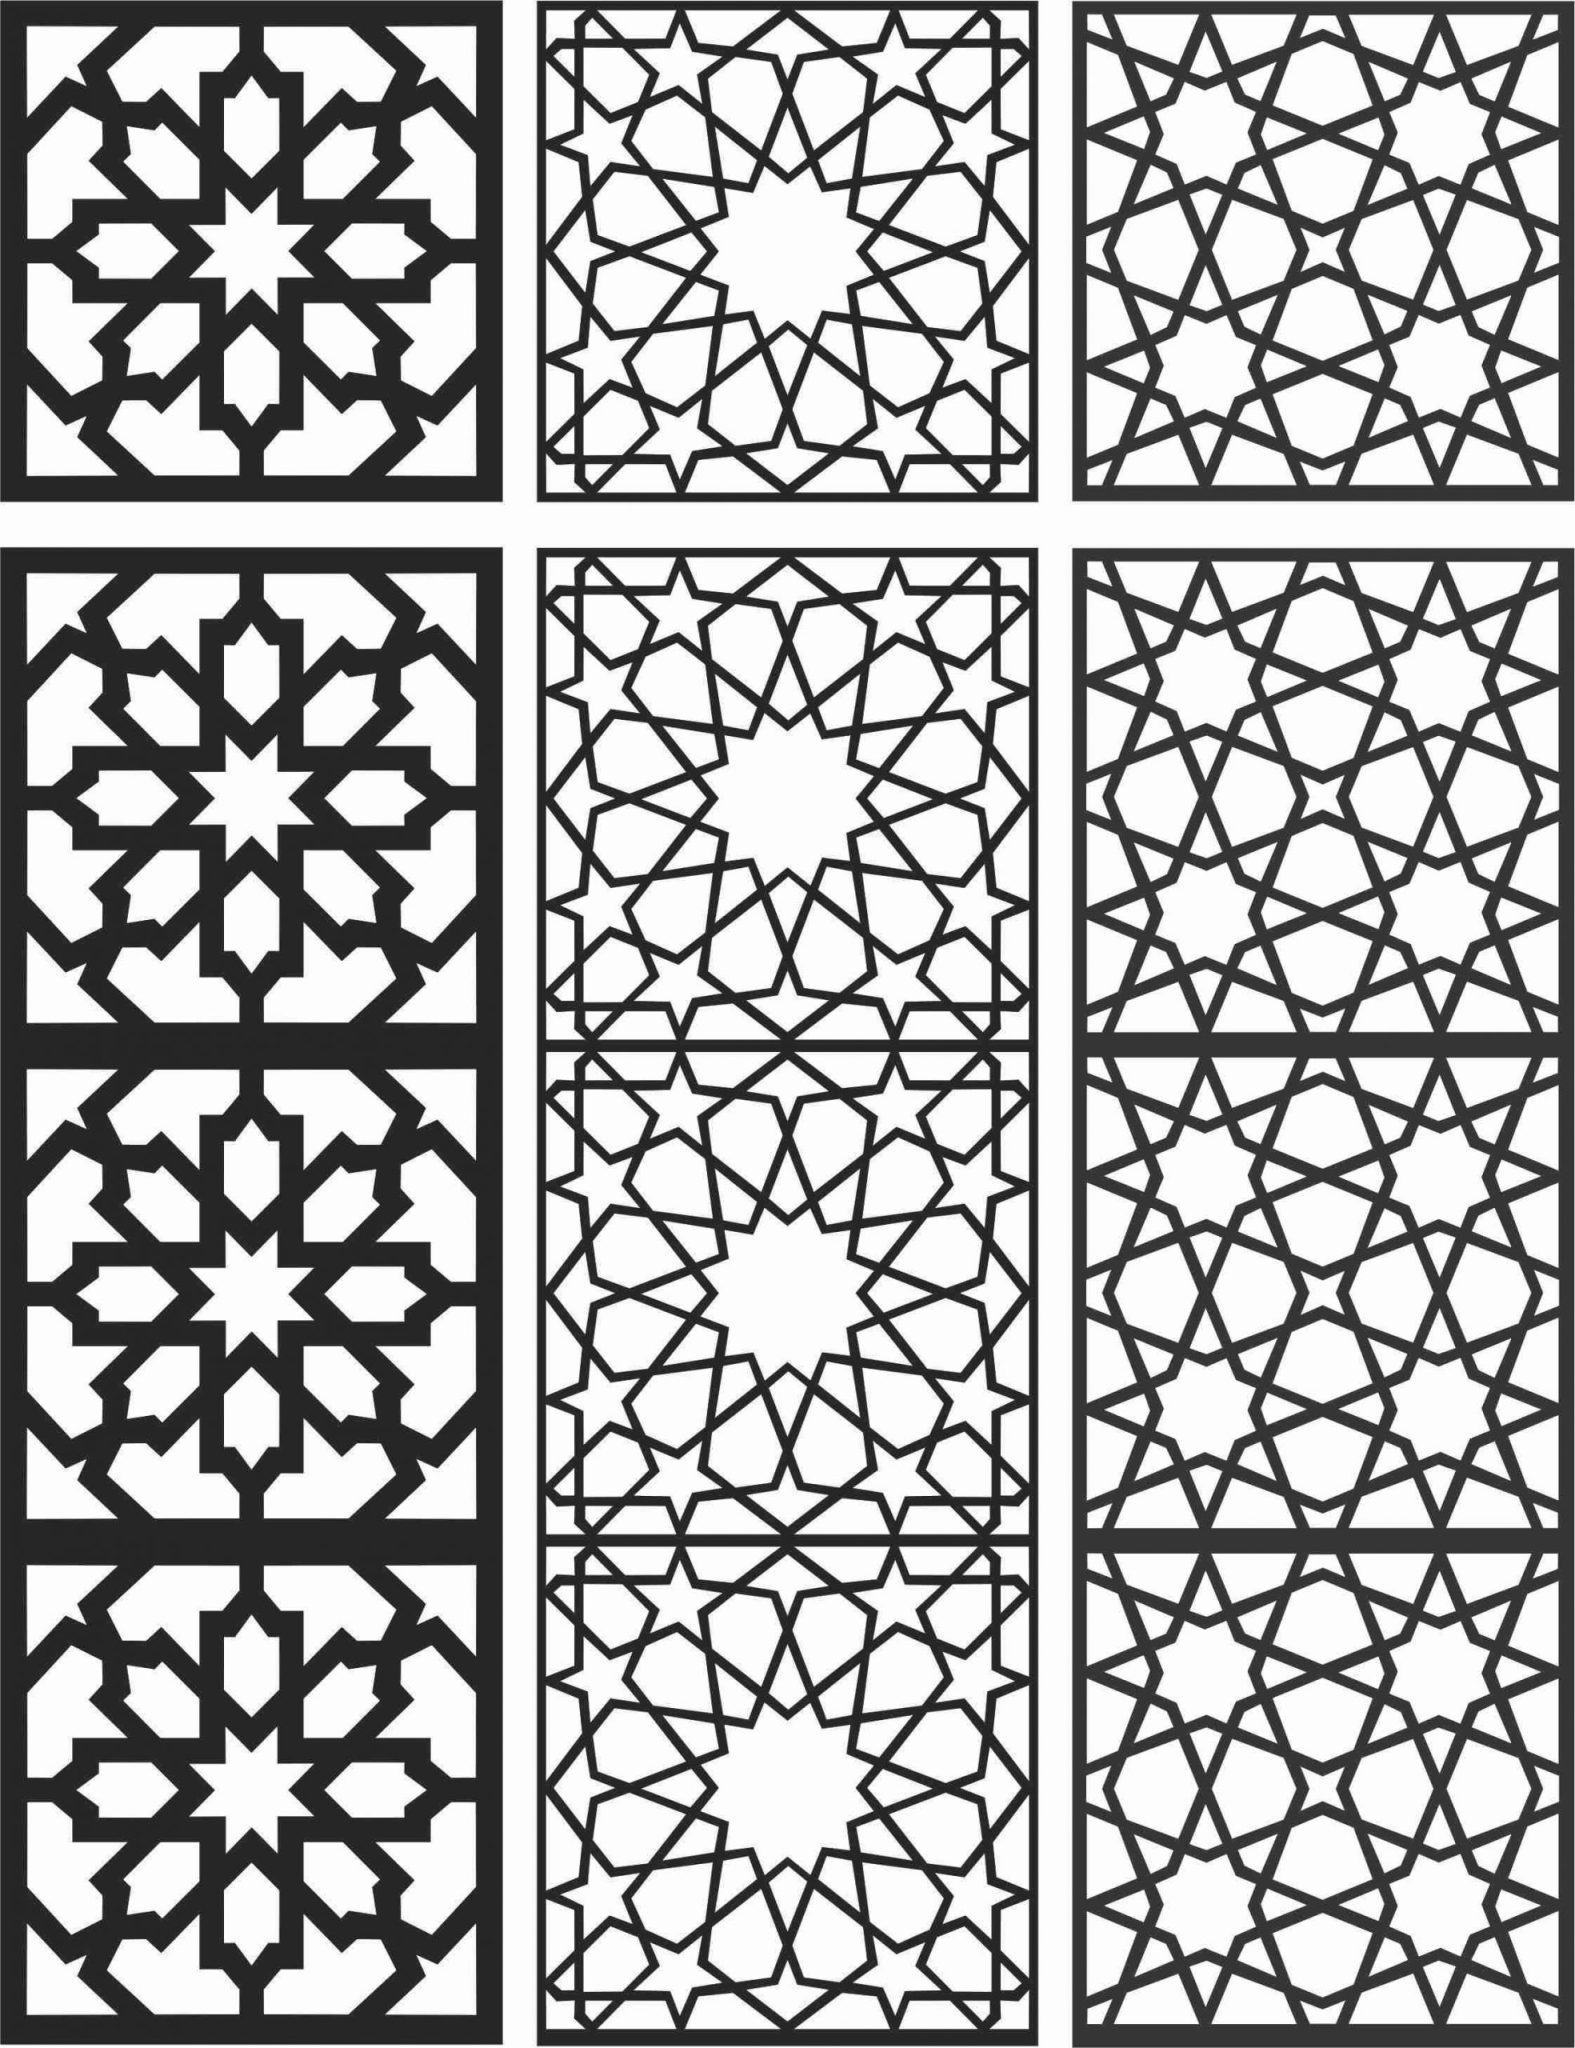 Floral Screen Patterns Design 103 Free DXF File